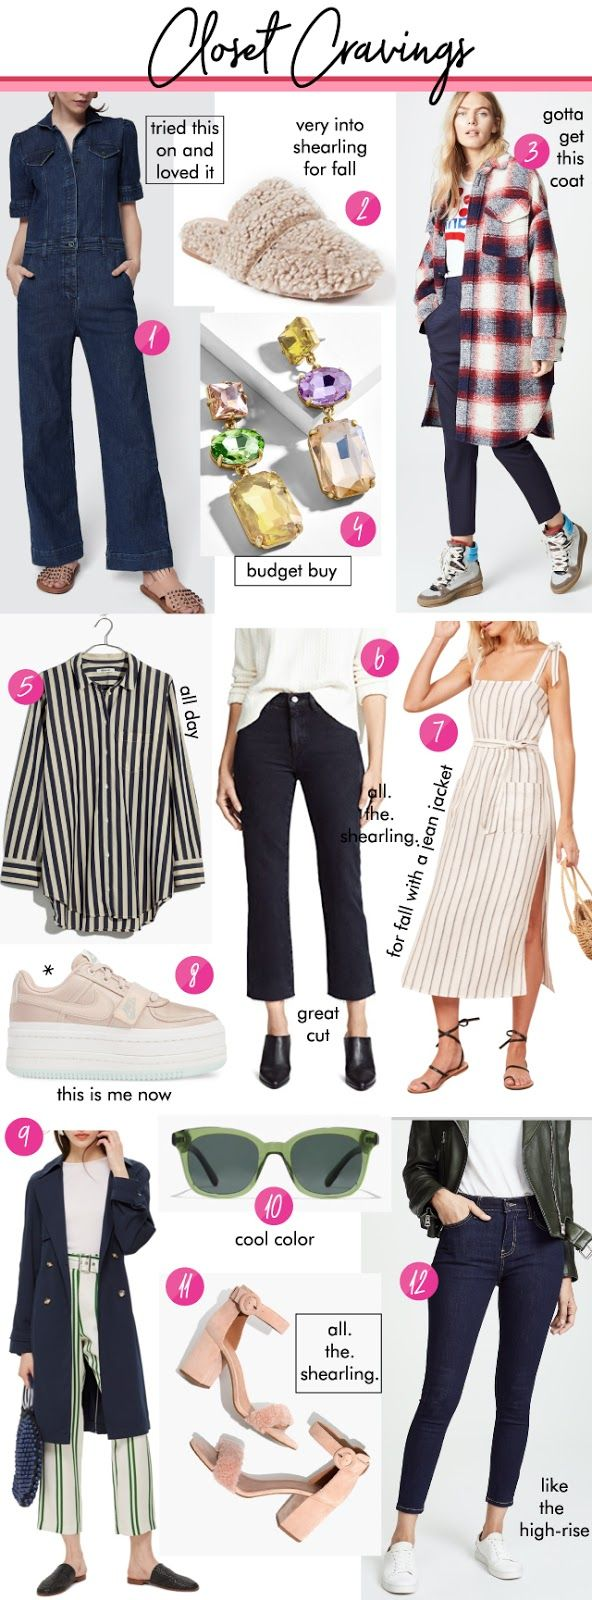 155ff986a05 1- denim jumpsuit goop    2 - shearling loafer shopbop   3 - Isabel marant  coat shopbop    4 - earrings baublebar    5 - striped blouse madewell    6  ...